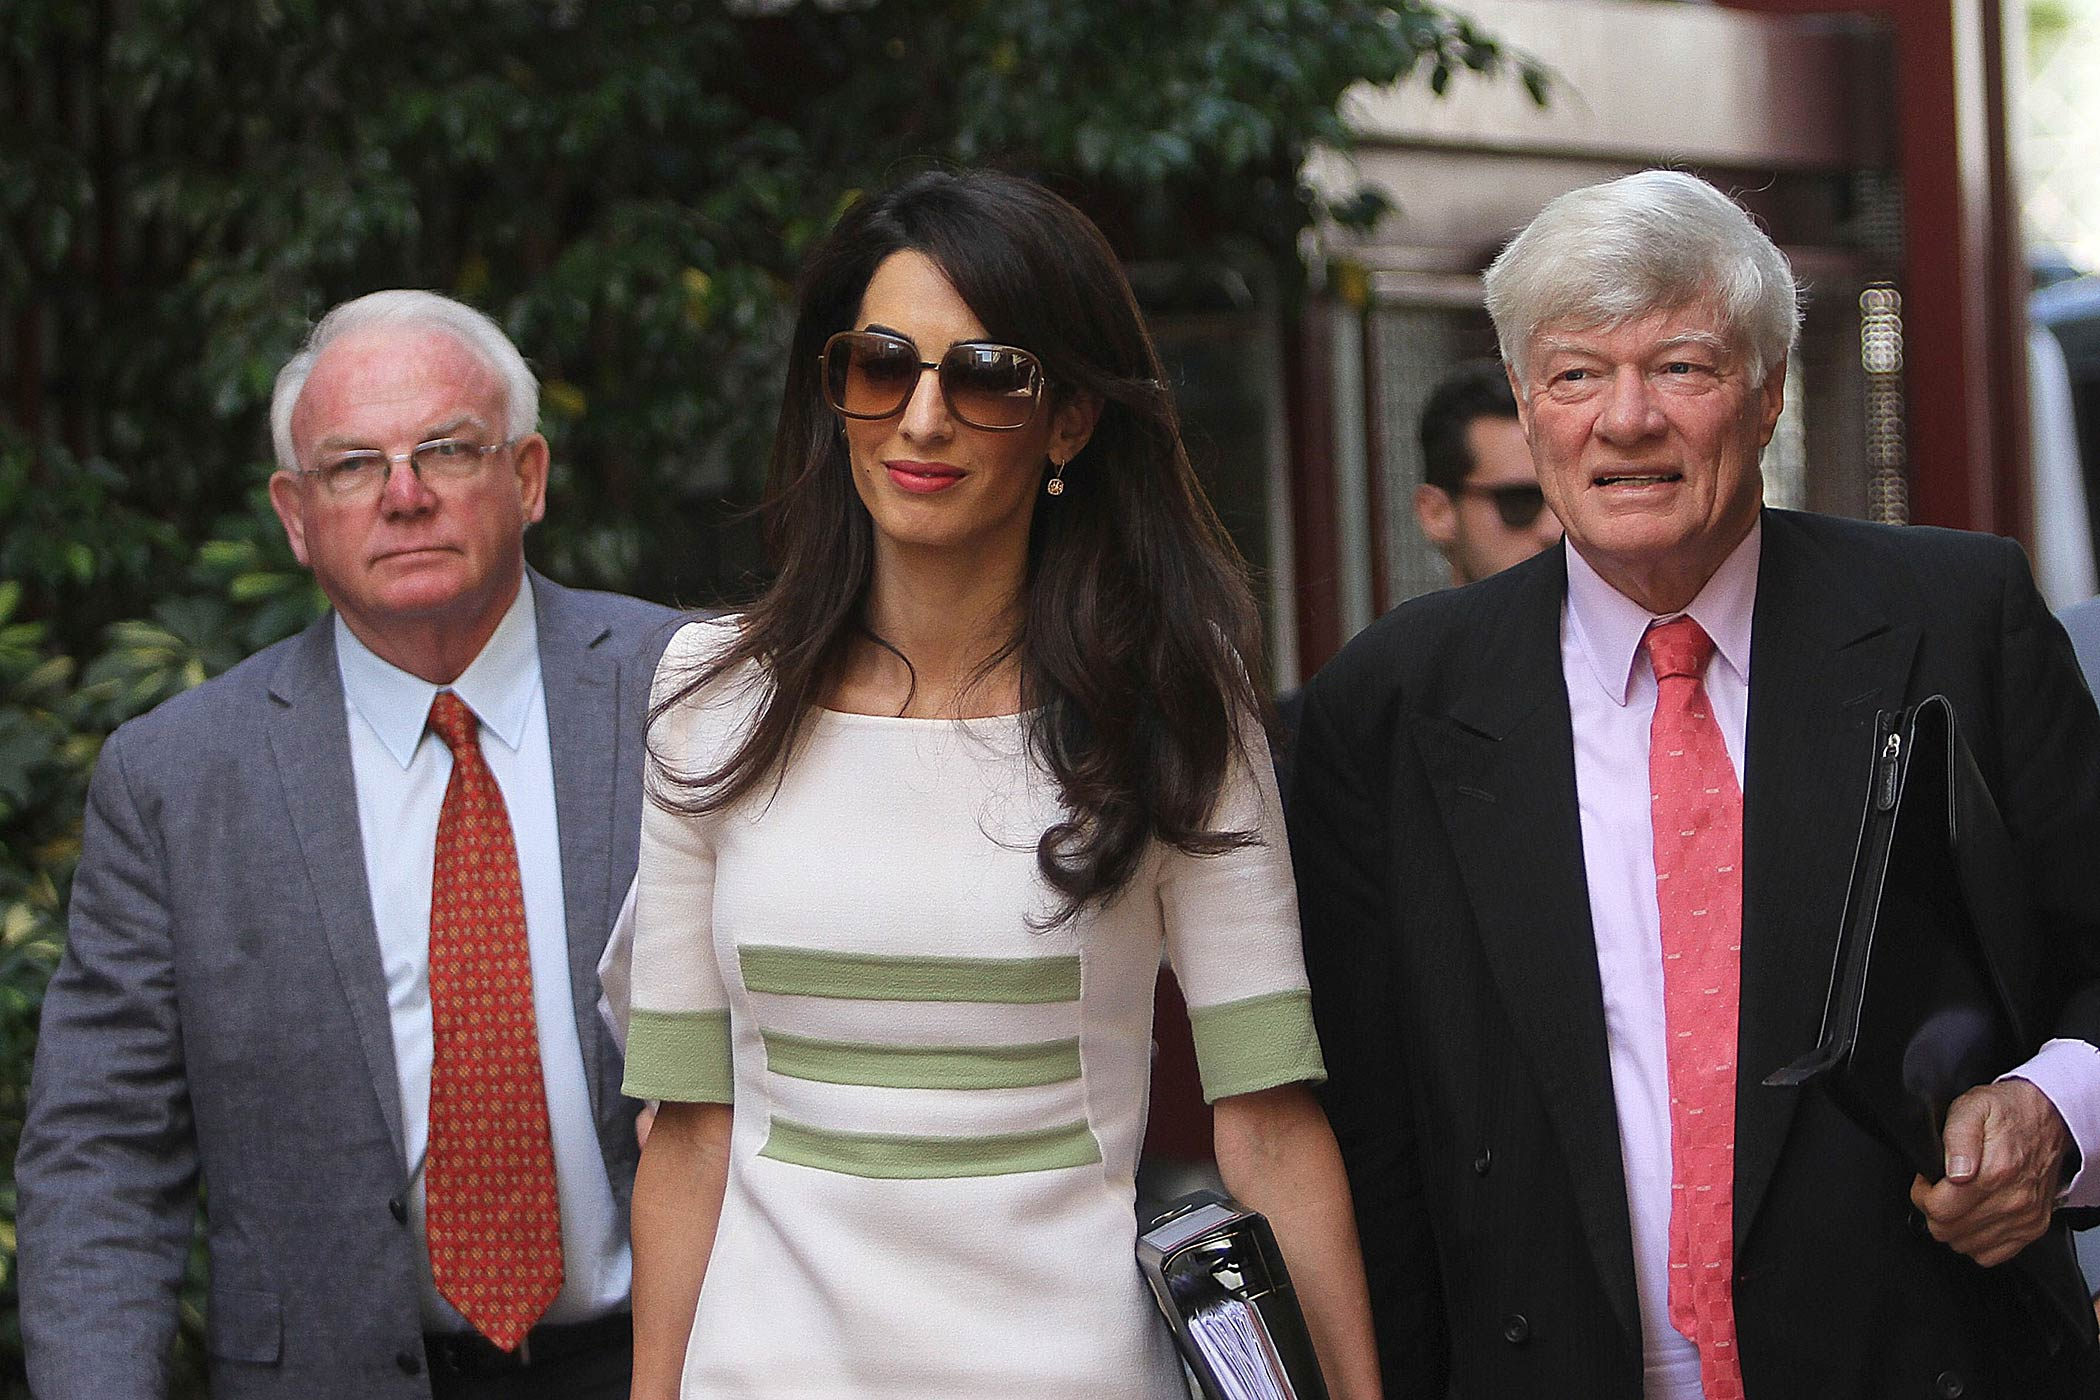 Amal Clooney arrives in Athens as part of a team advising the Greek government on its bid to reclaim the ancient artifacts from Britain on Oct. 14, 2014.